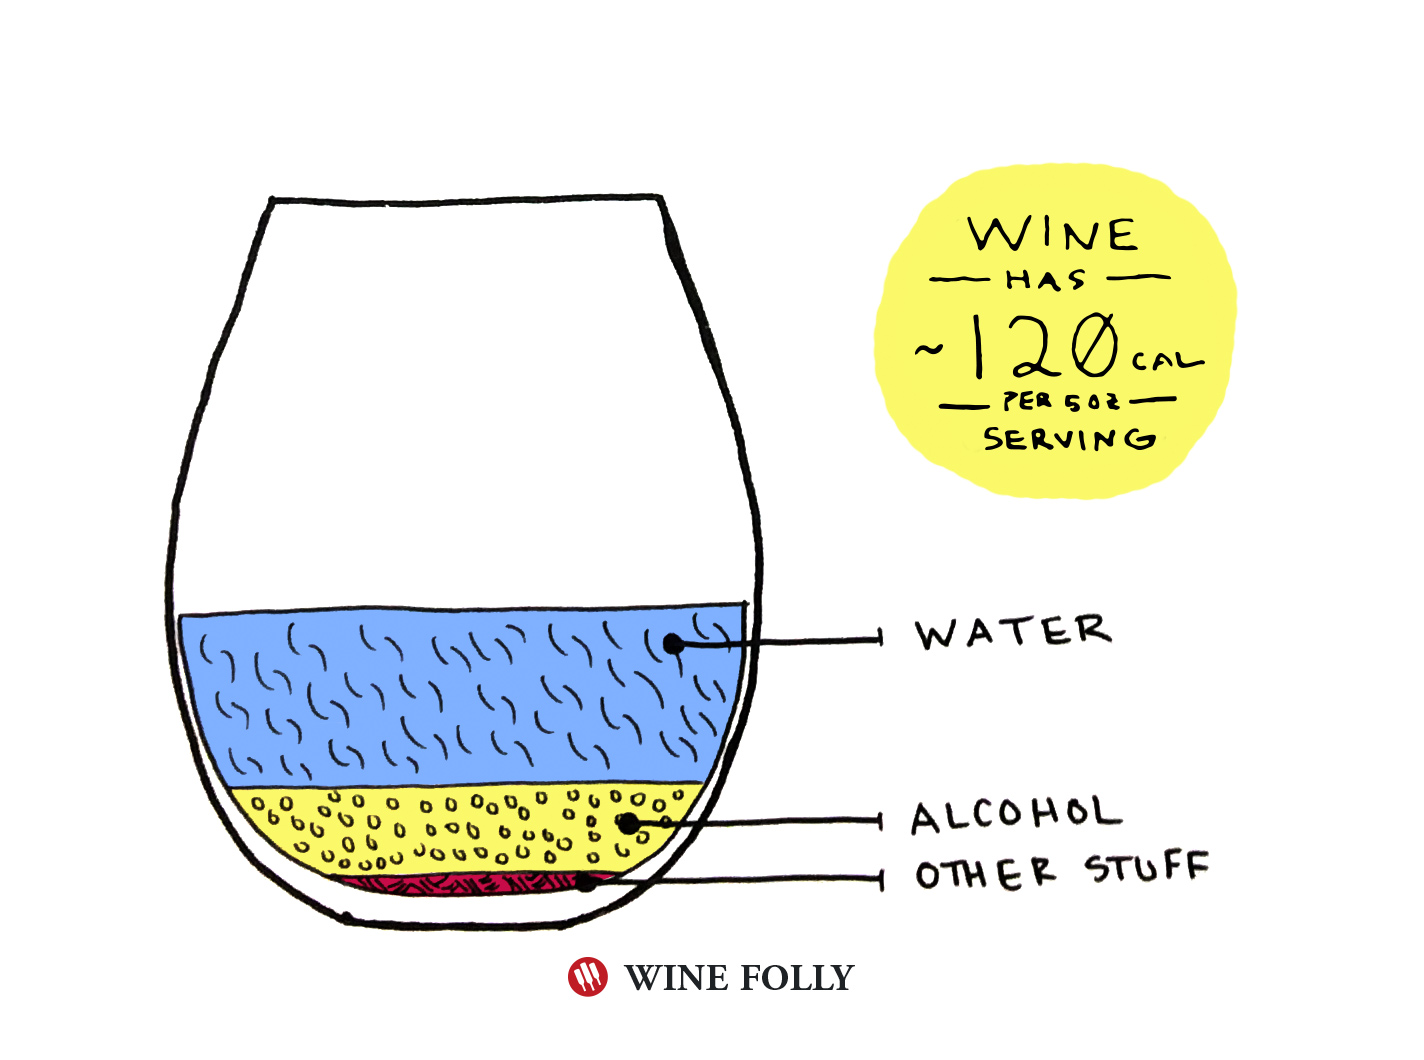 Wine Calories per 5 oz serving in a glass illustration by Wine Folly